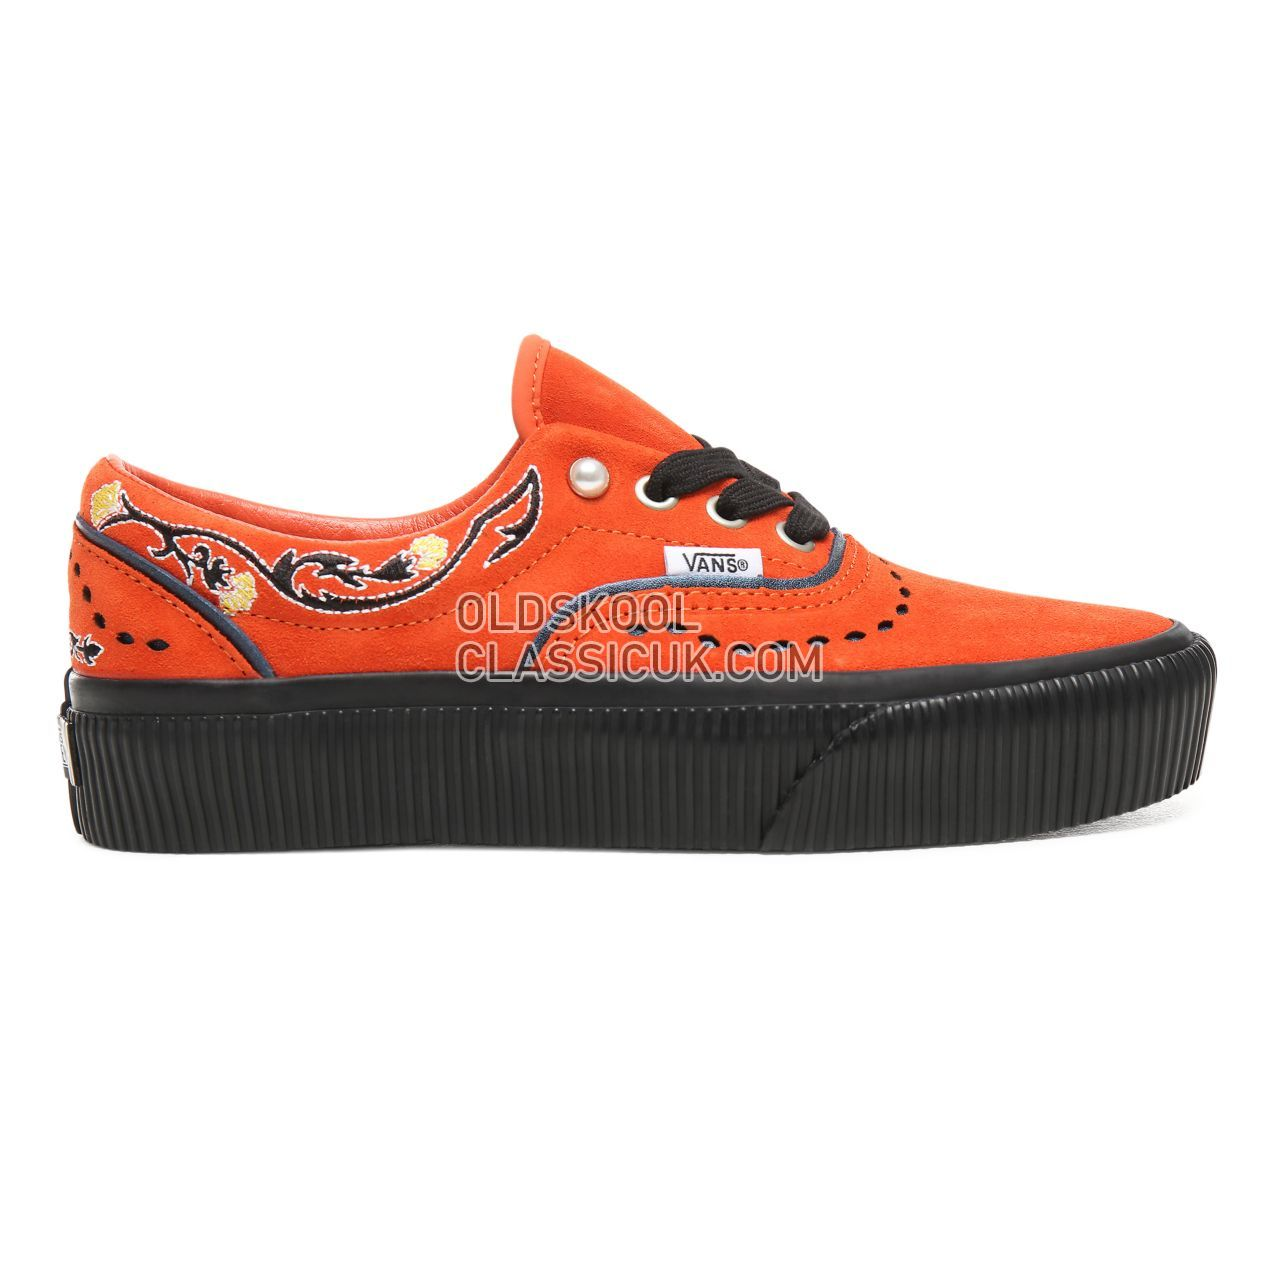 041c1d7fc00 Vans Pearly Punk Era Platform Sneakers Womens (Pearly Punk) Koi Black  VN0A3WLUVPW Shoes ...